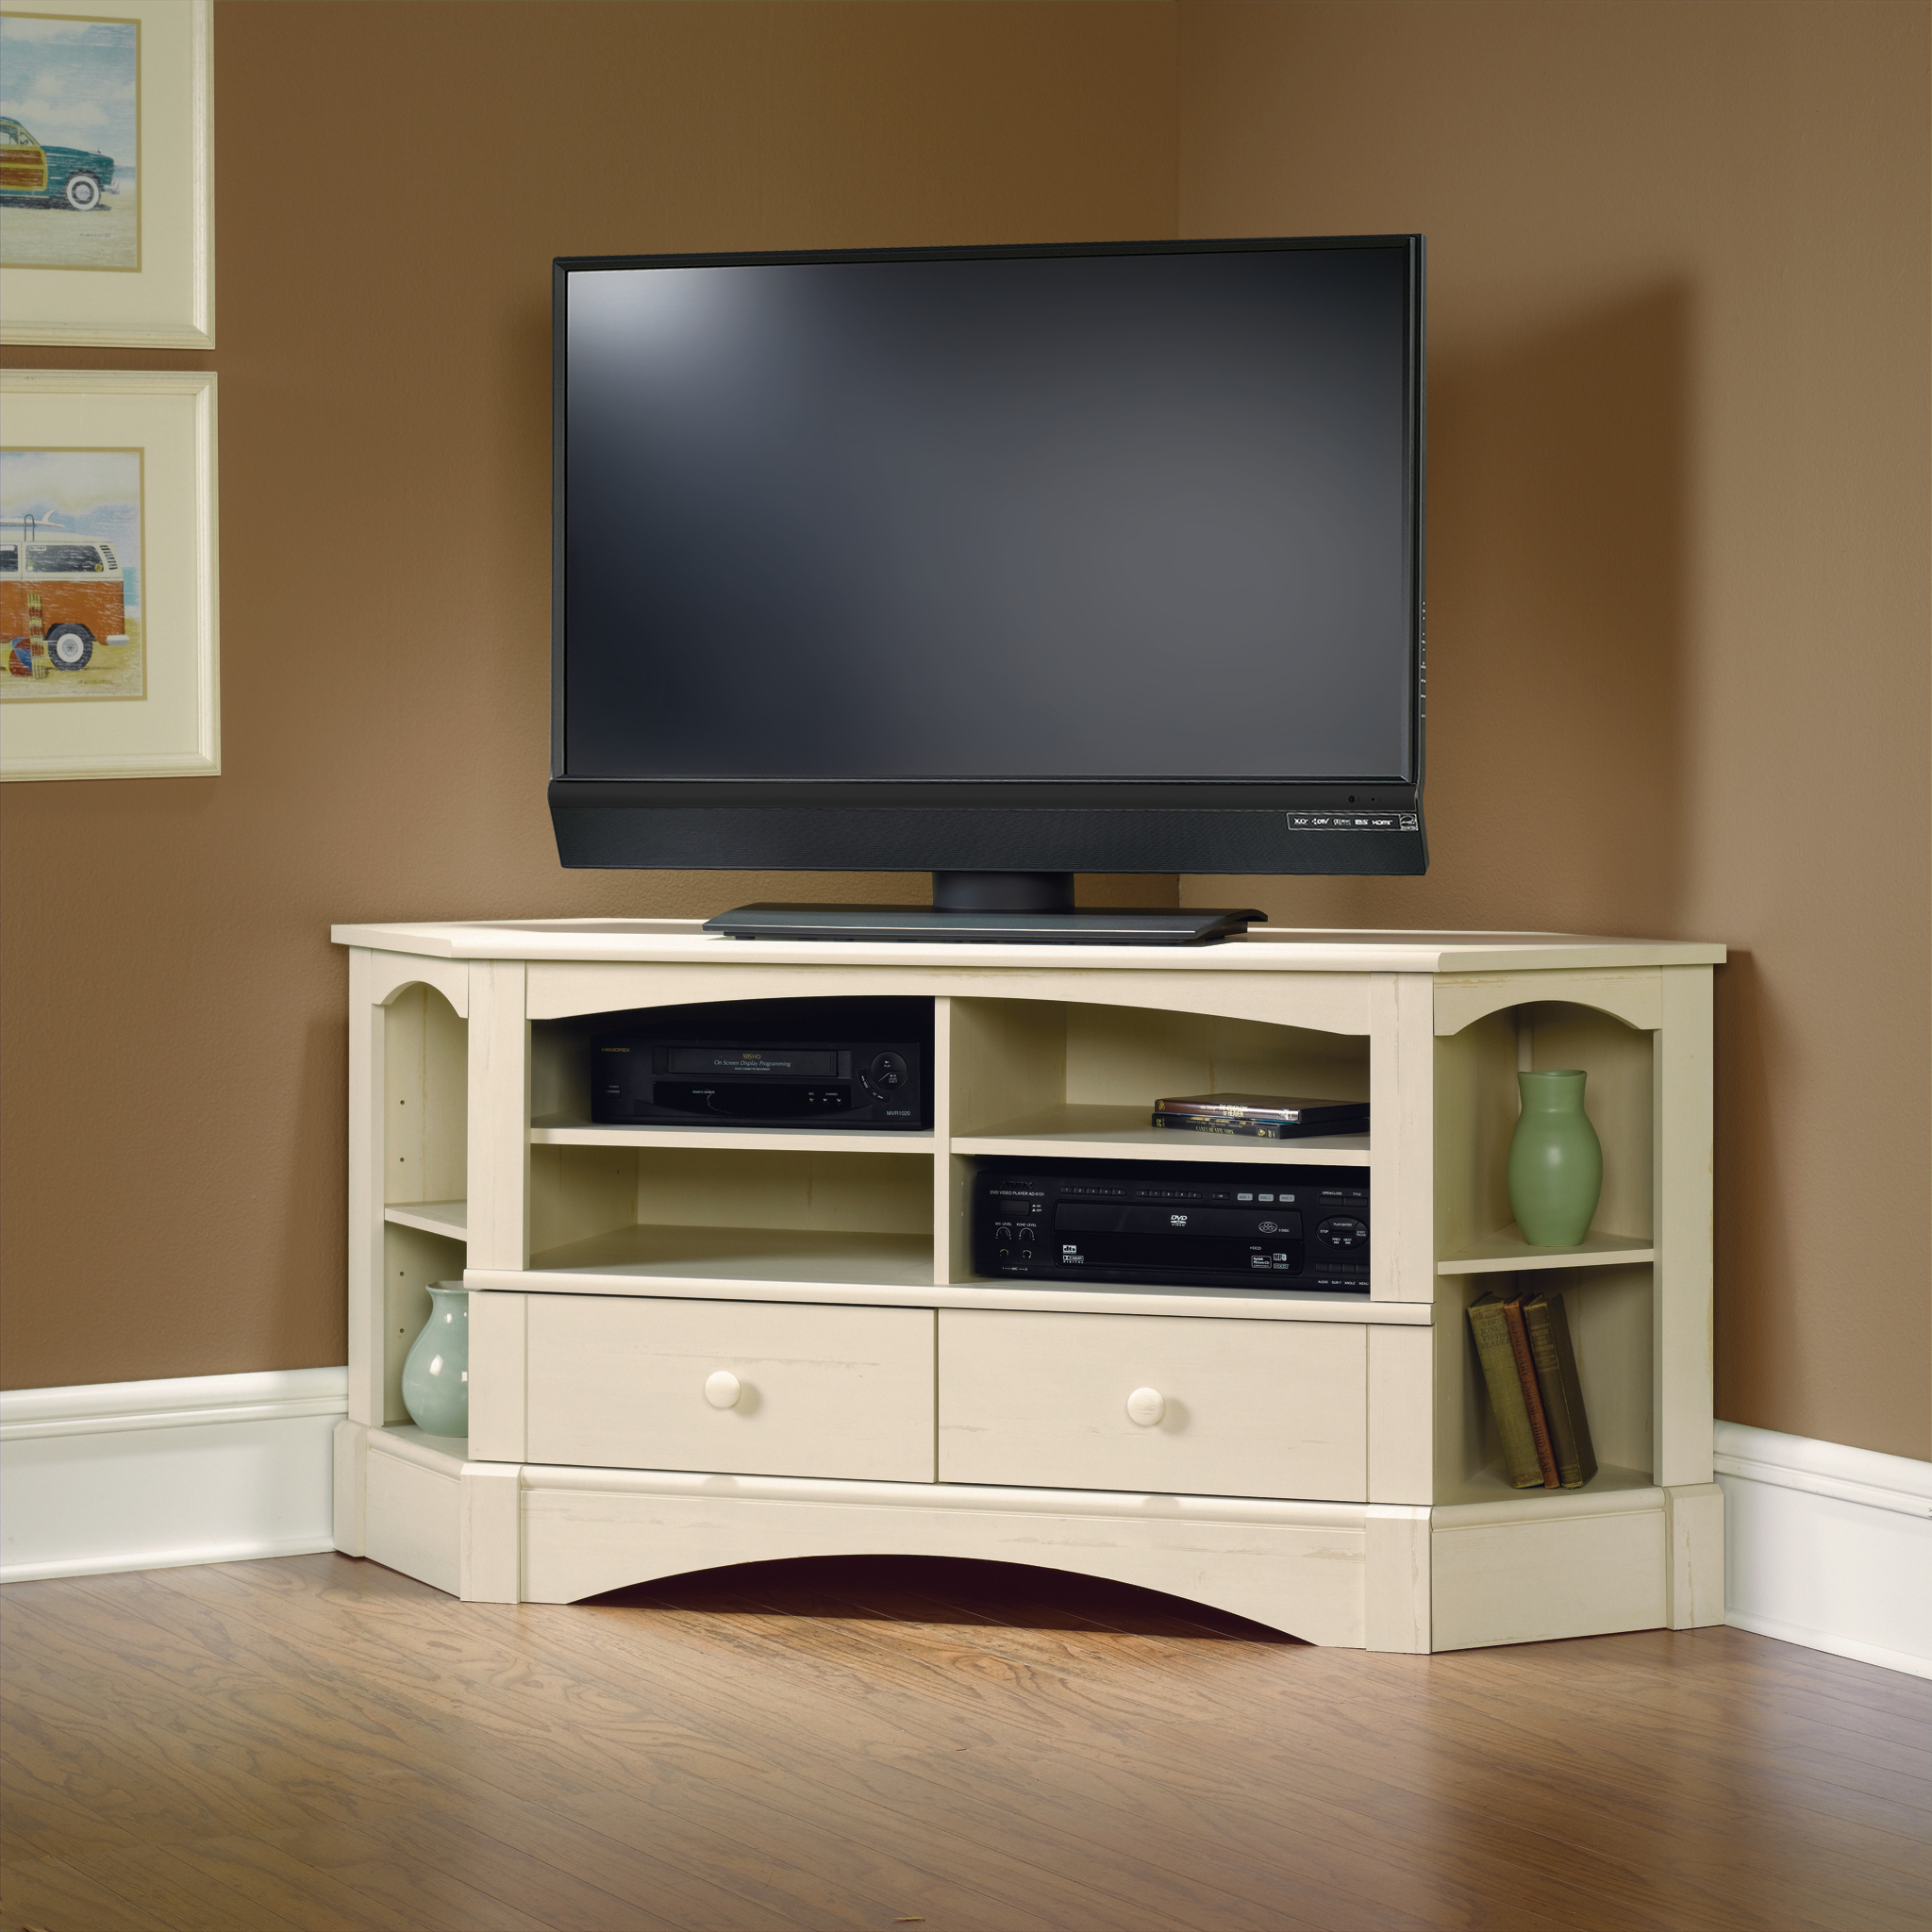 Corner Entertainment Centers For Flat Screen Tvs Ideas On Foter